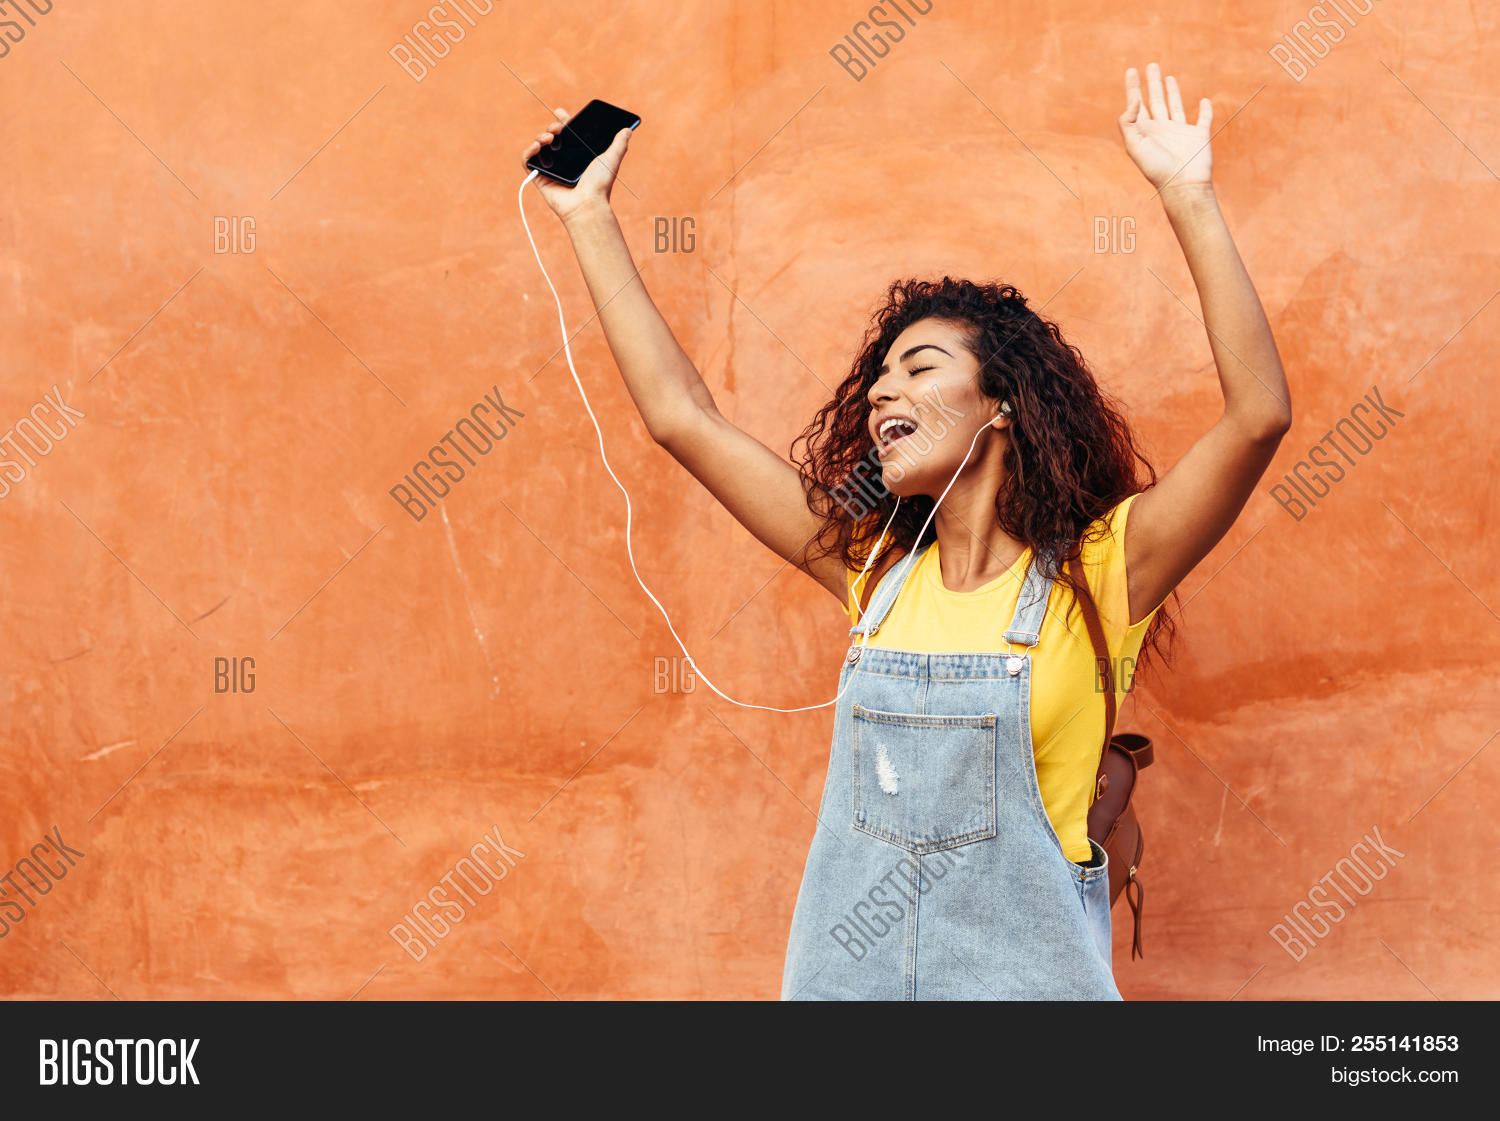 adult,african,arab,attractive,background,beautiful,black,brunette,casual,cell,cheerful,city,clothes,cool,curly,dancing,device,earphones,ethnic,female,girl,hair,hairstyle,happiness,happy,headphones,lady,lifestyle,listening,mobile,modern,music,outdoors,outside,person,phone,portrait,pretty,smart,smartphone,smile,smiling,street,style,technology,urban,woman,young